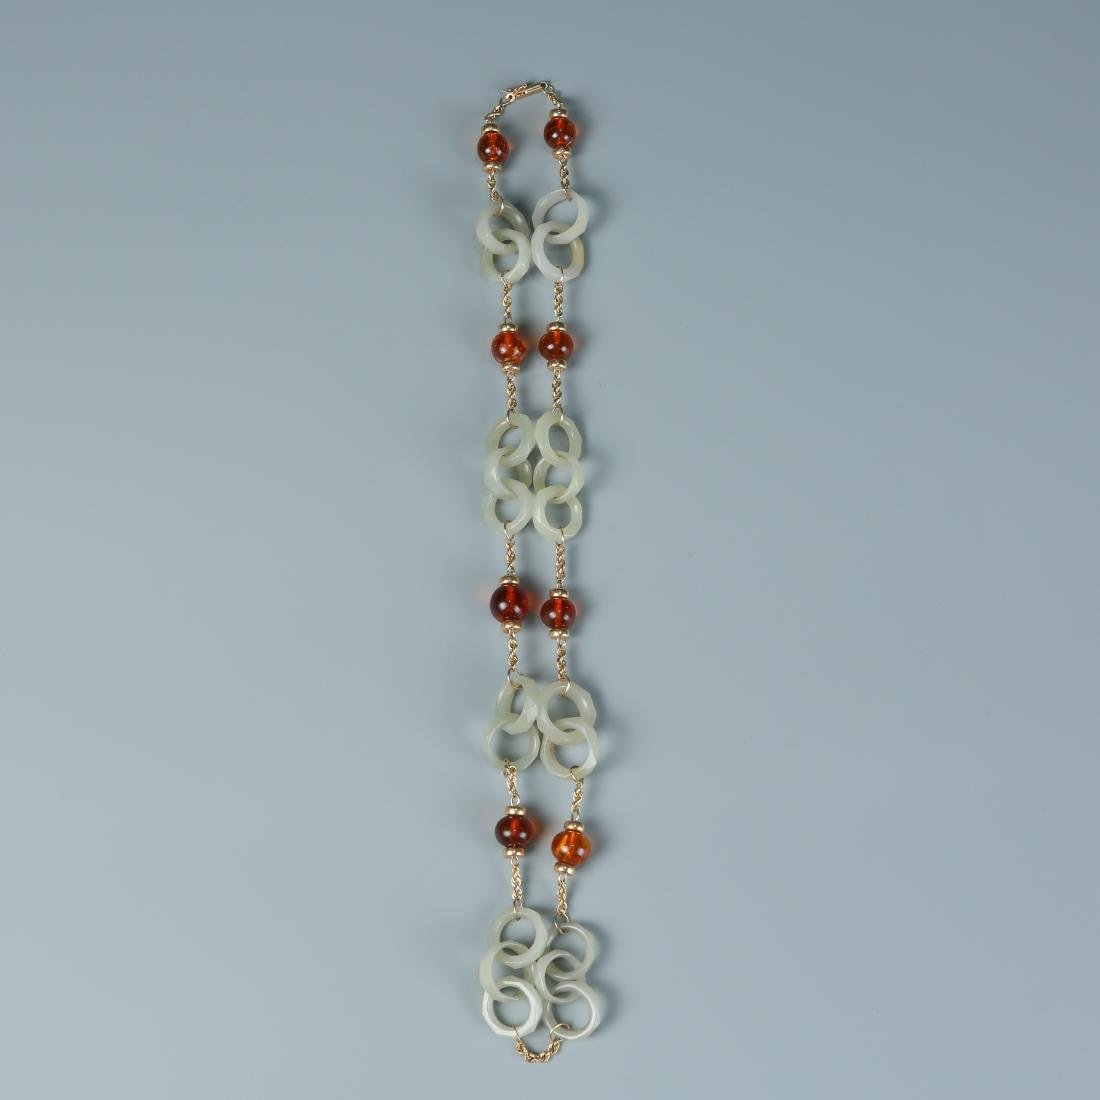 18K Jade Necklace of Rings with Amber Beads